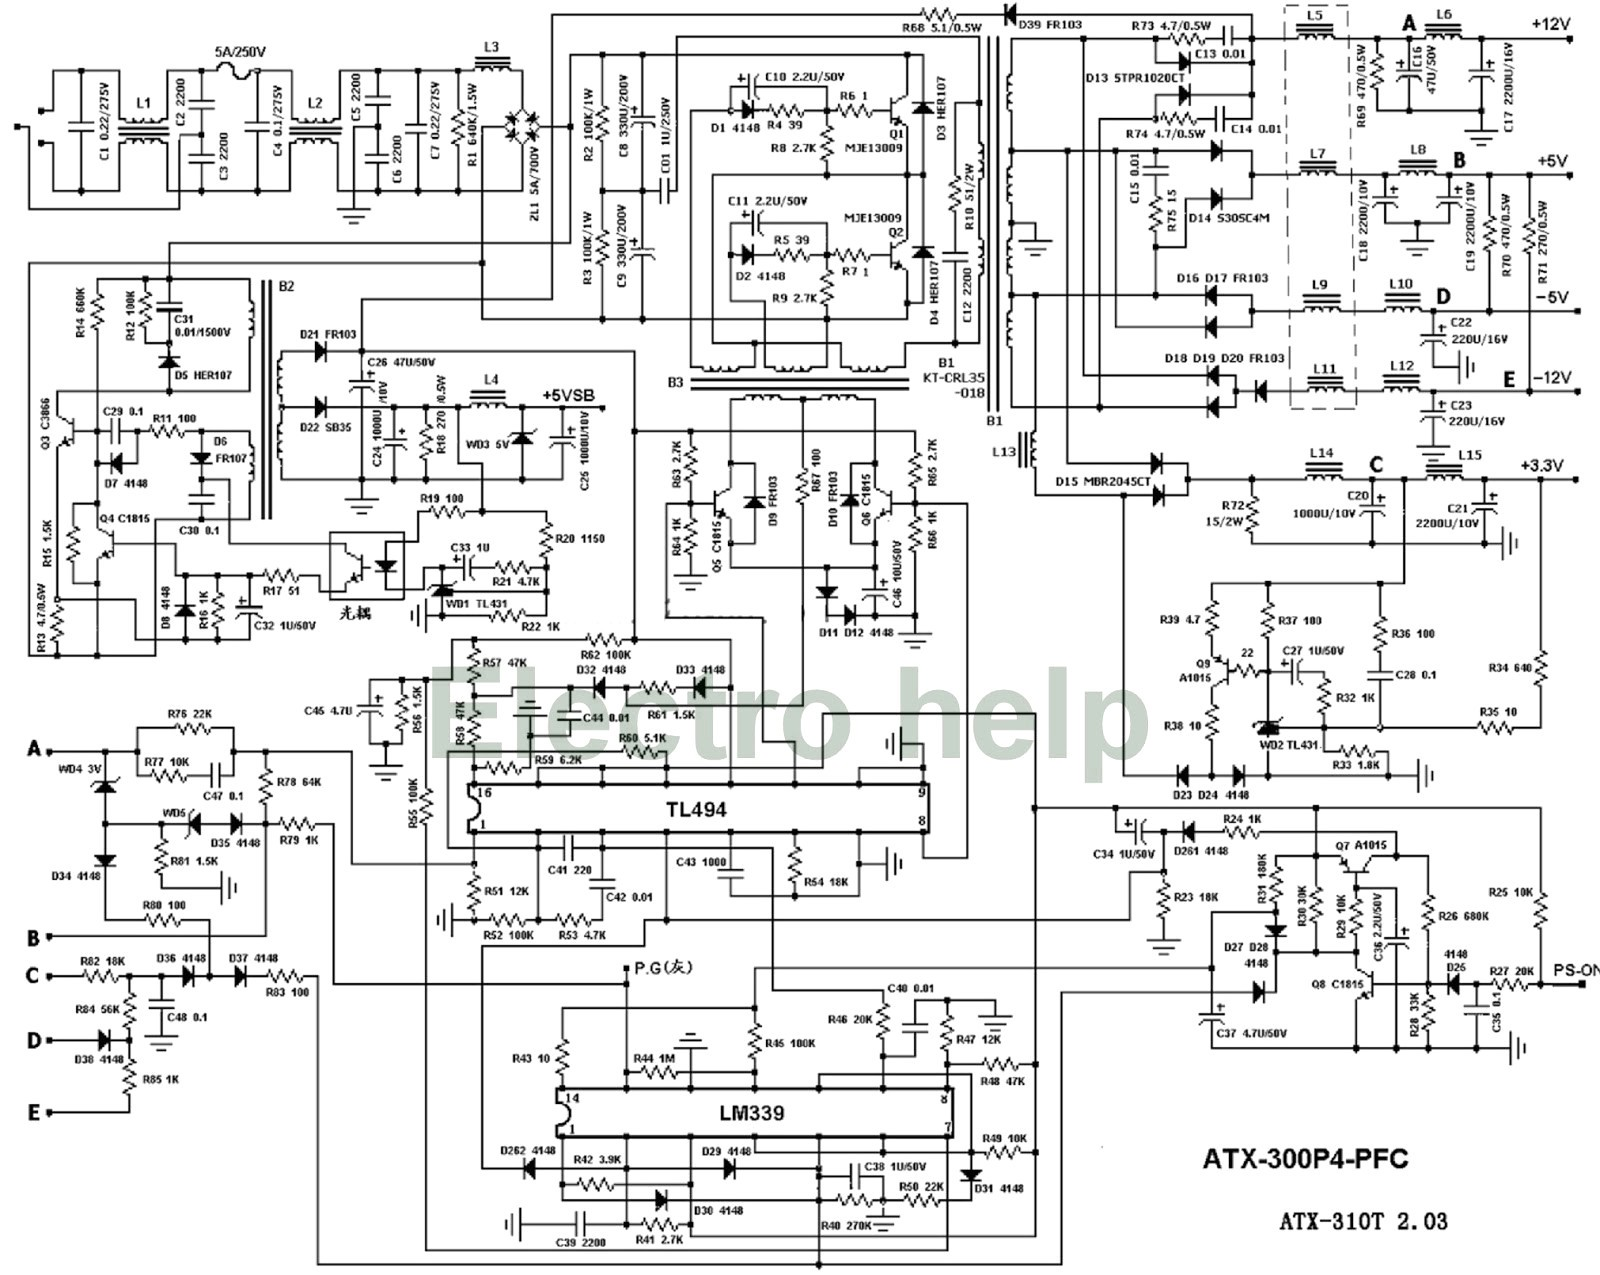 wiring diagram for white mowers